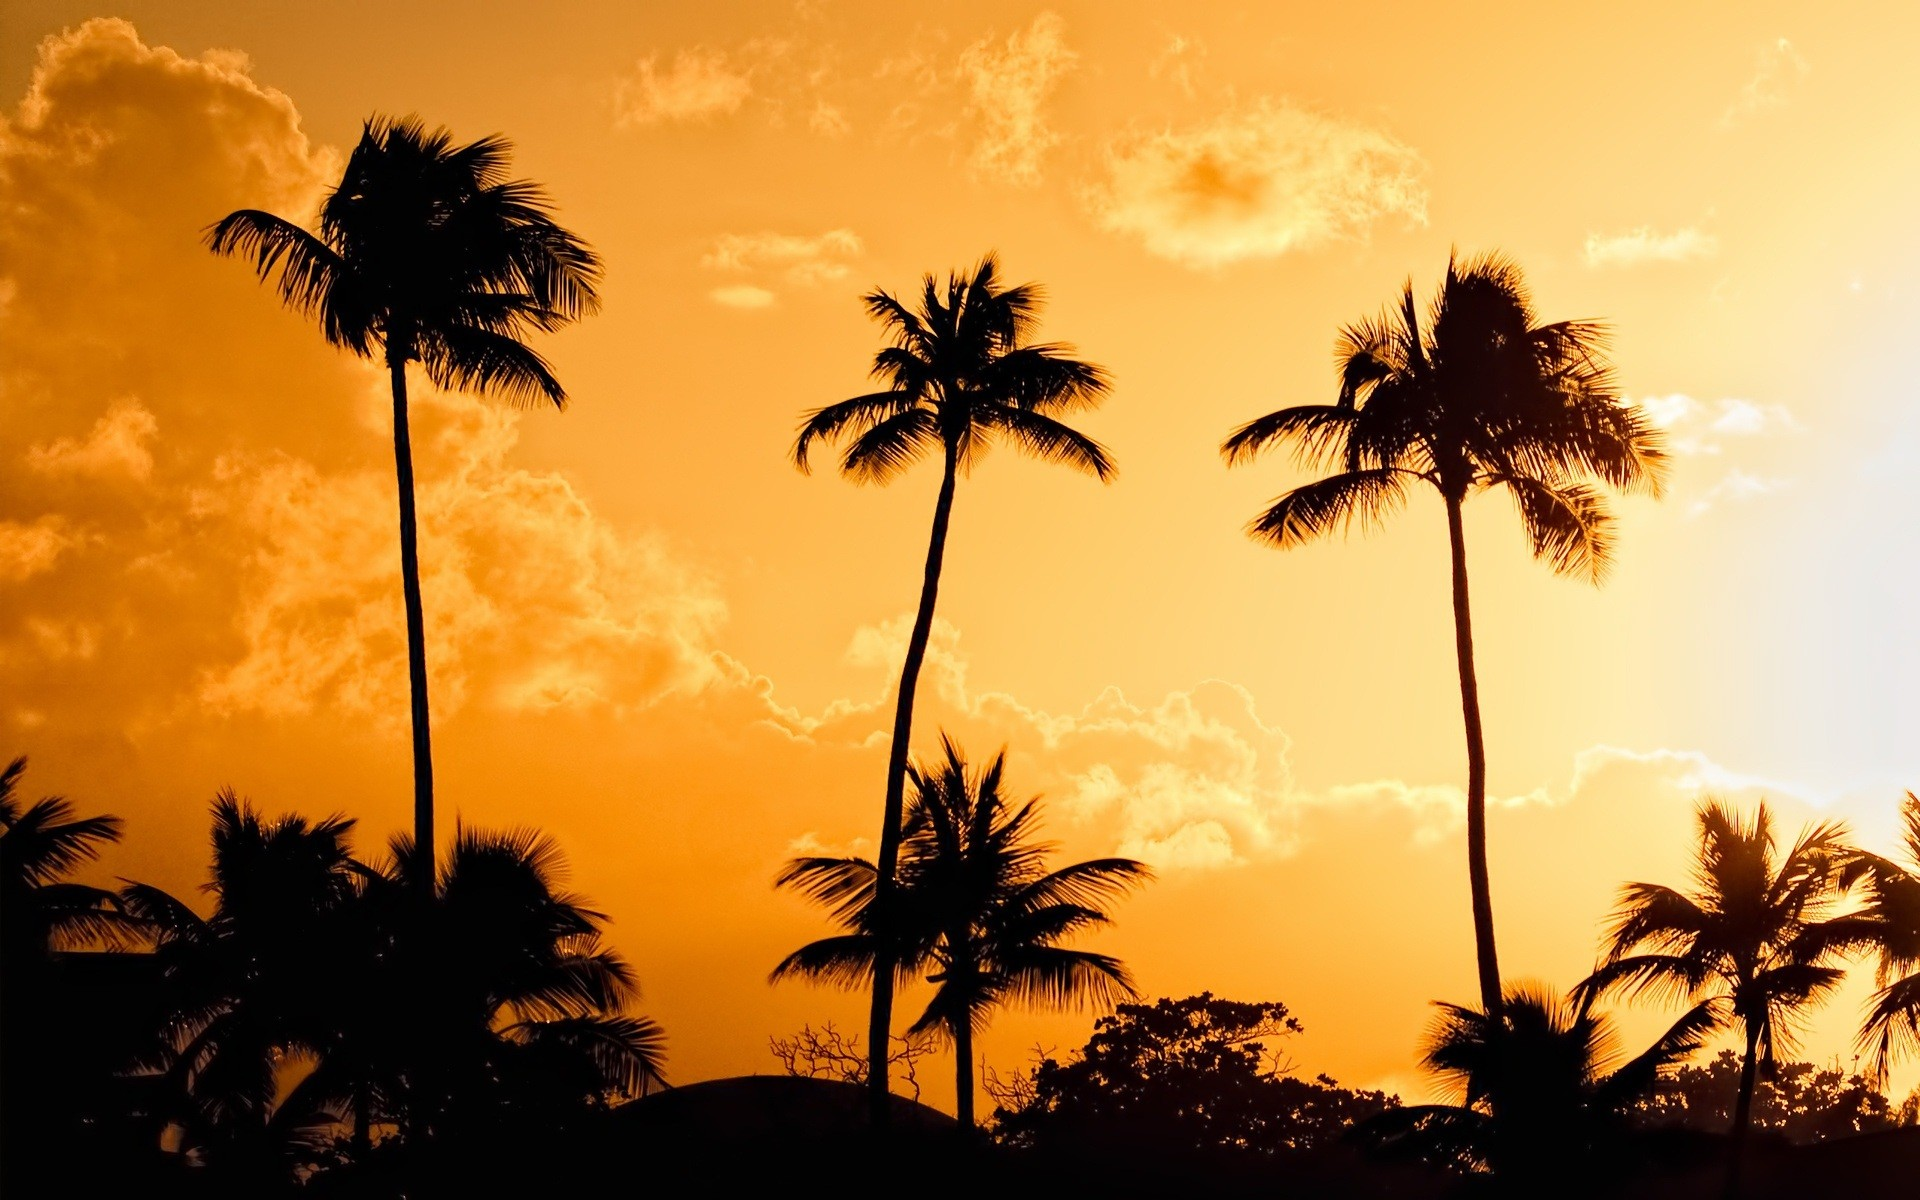 Beach palm trees wallpapers 58 images - Free palm tree screensavers ...